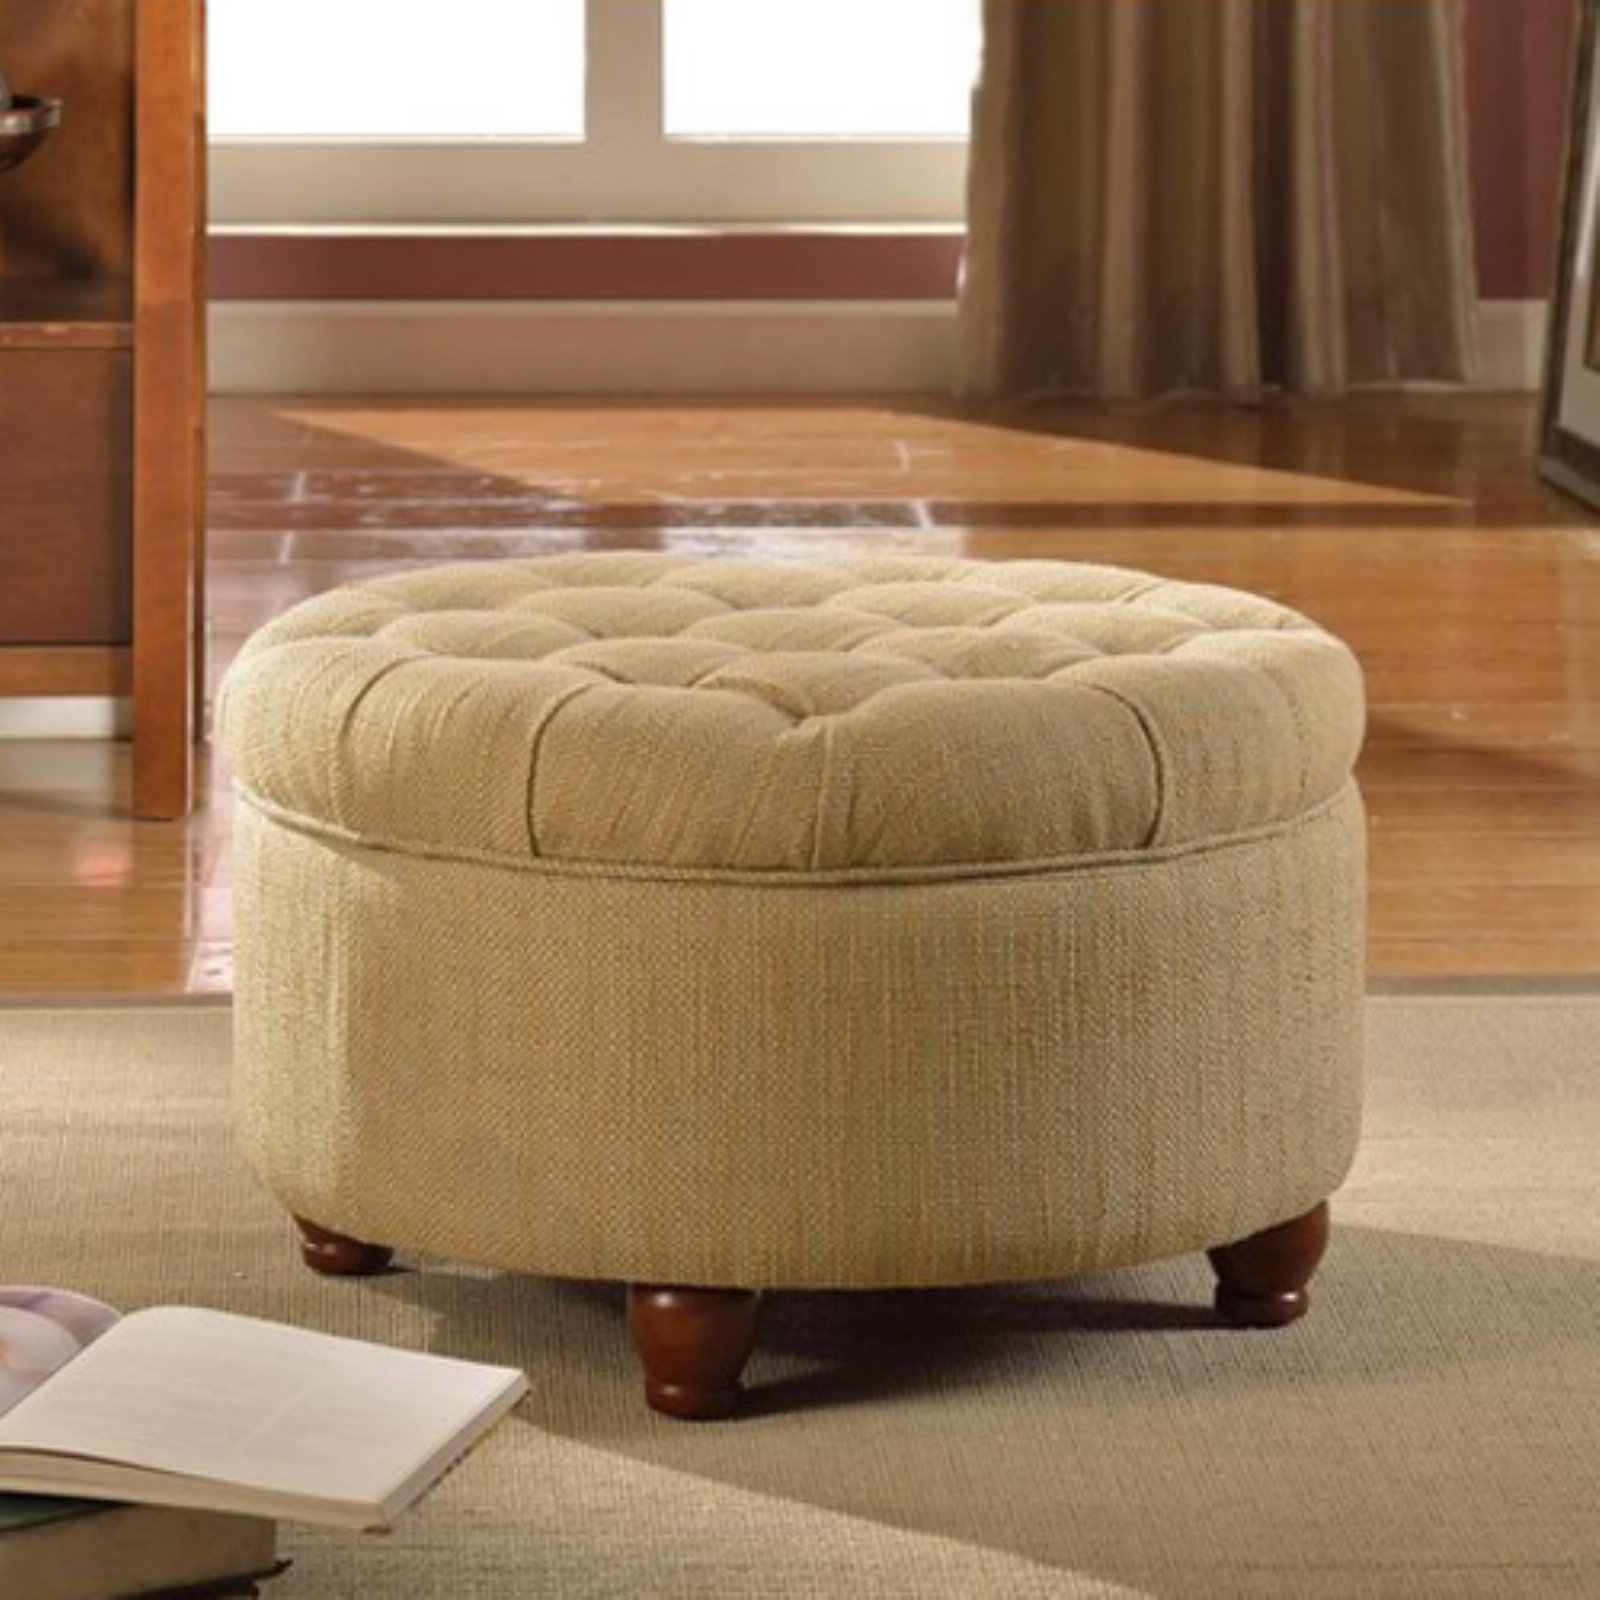 HomePop Tan And Cream Tweed Tufted Storage Ottoman